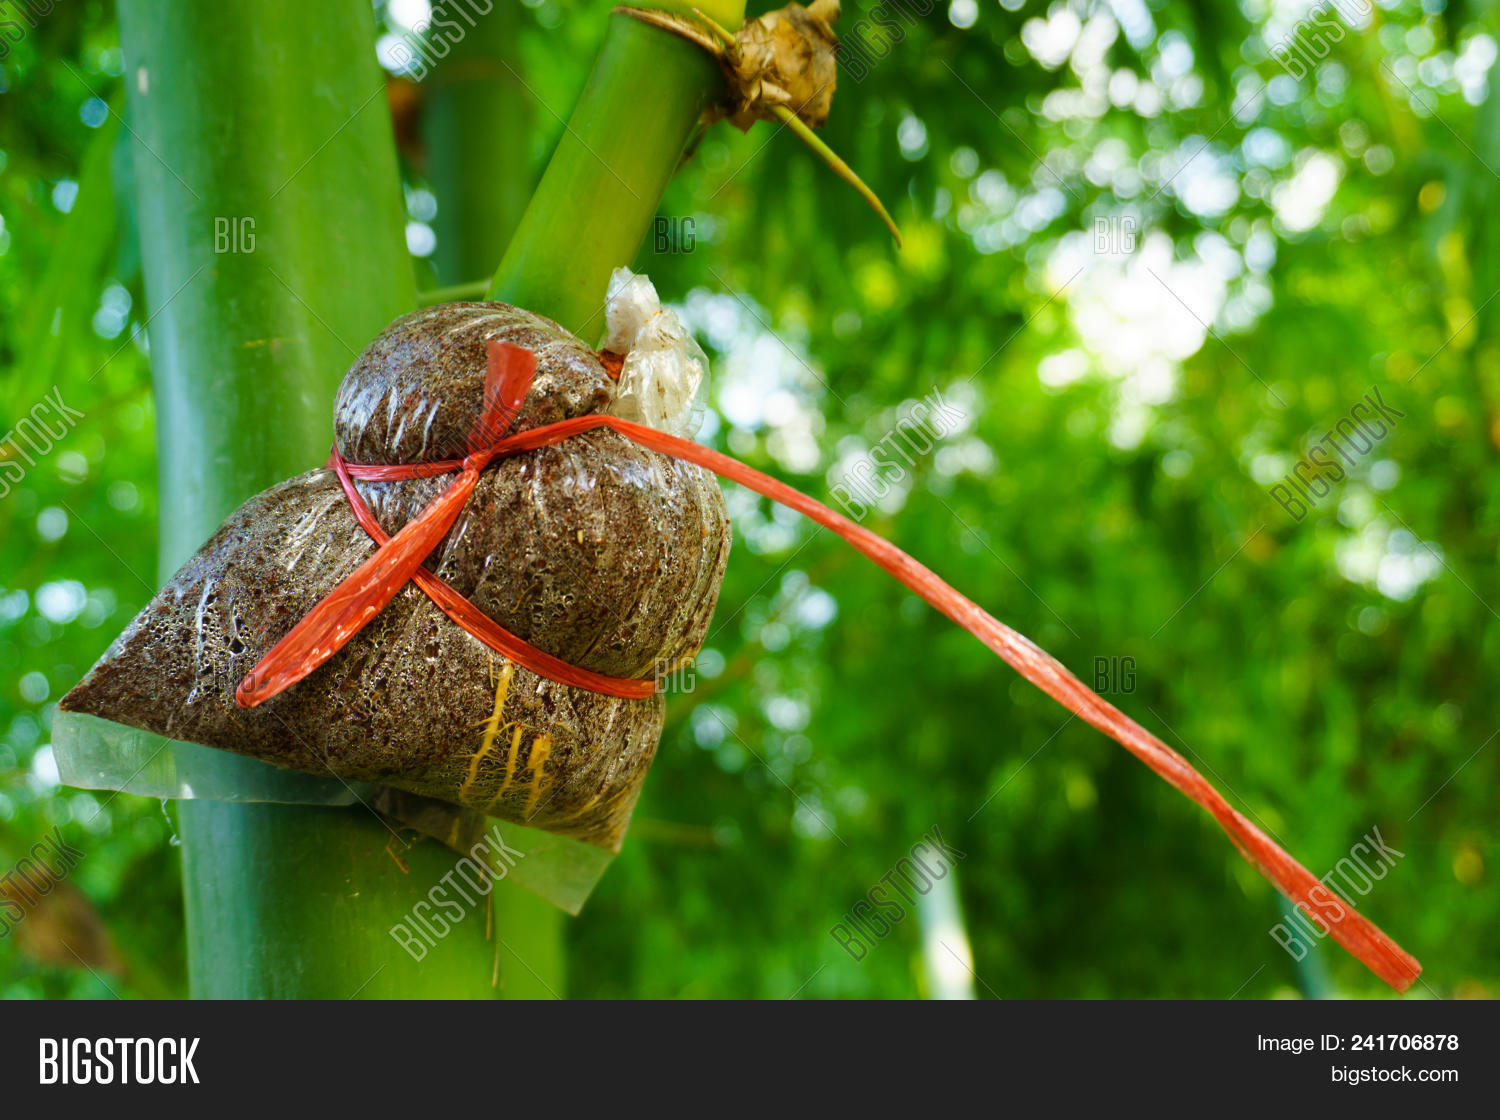 Bamboo Species Image Photo Free Trial Bigstock